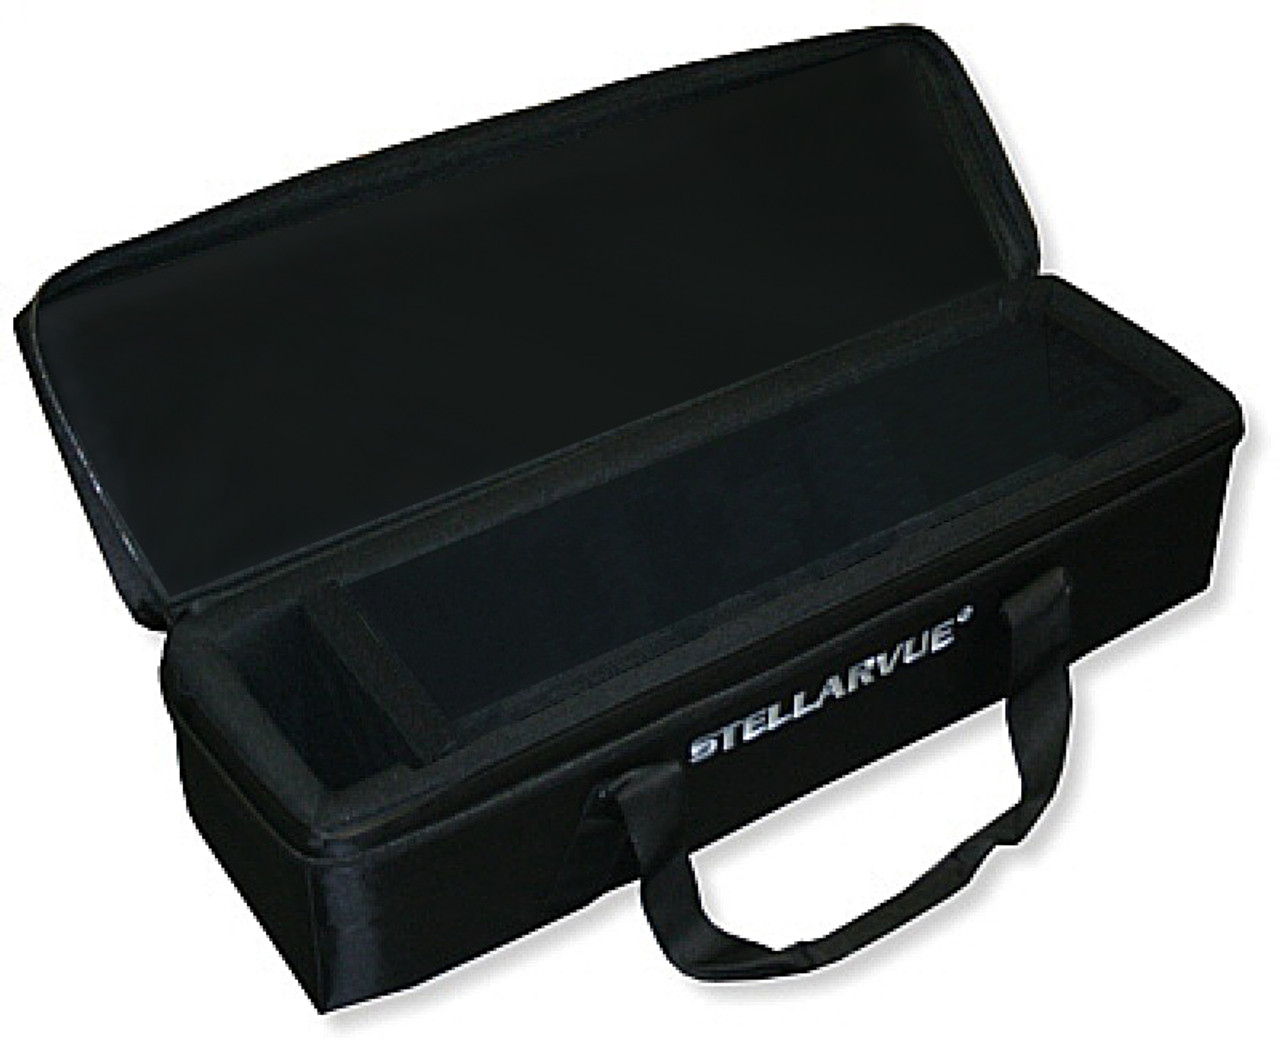 C130L Case for Stellarvue 130mm refractors